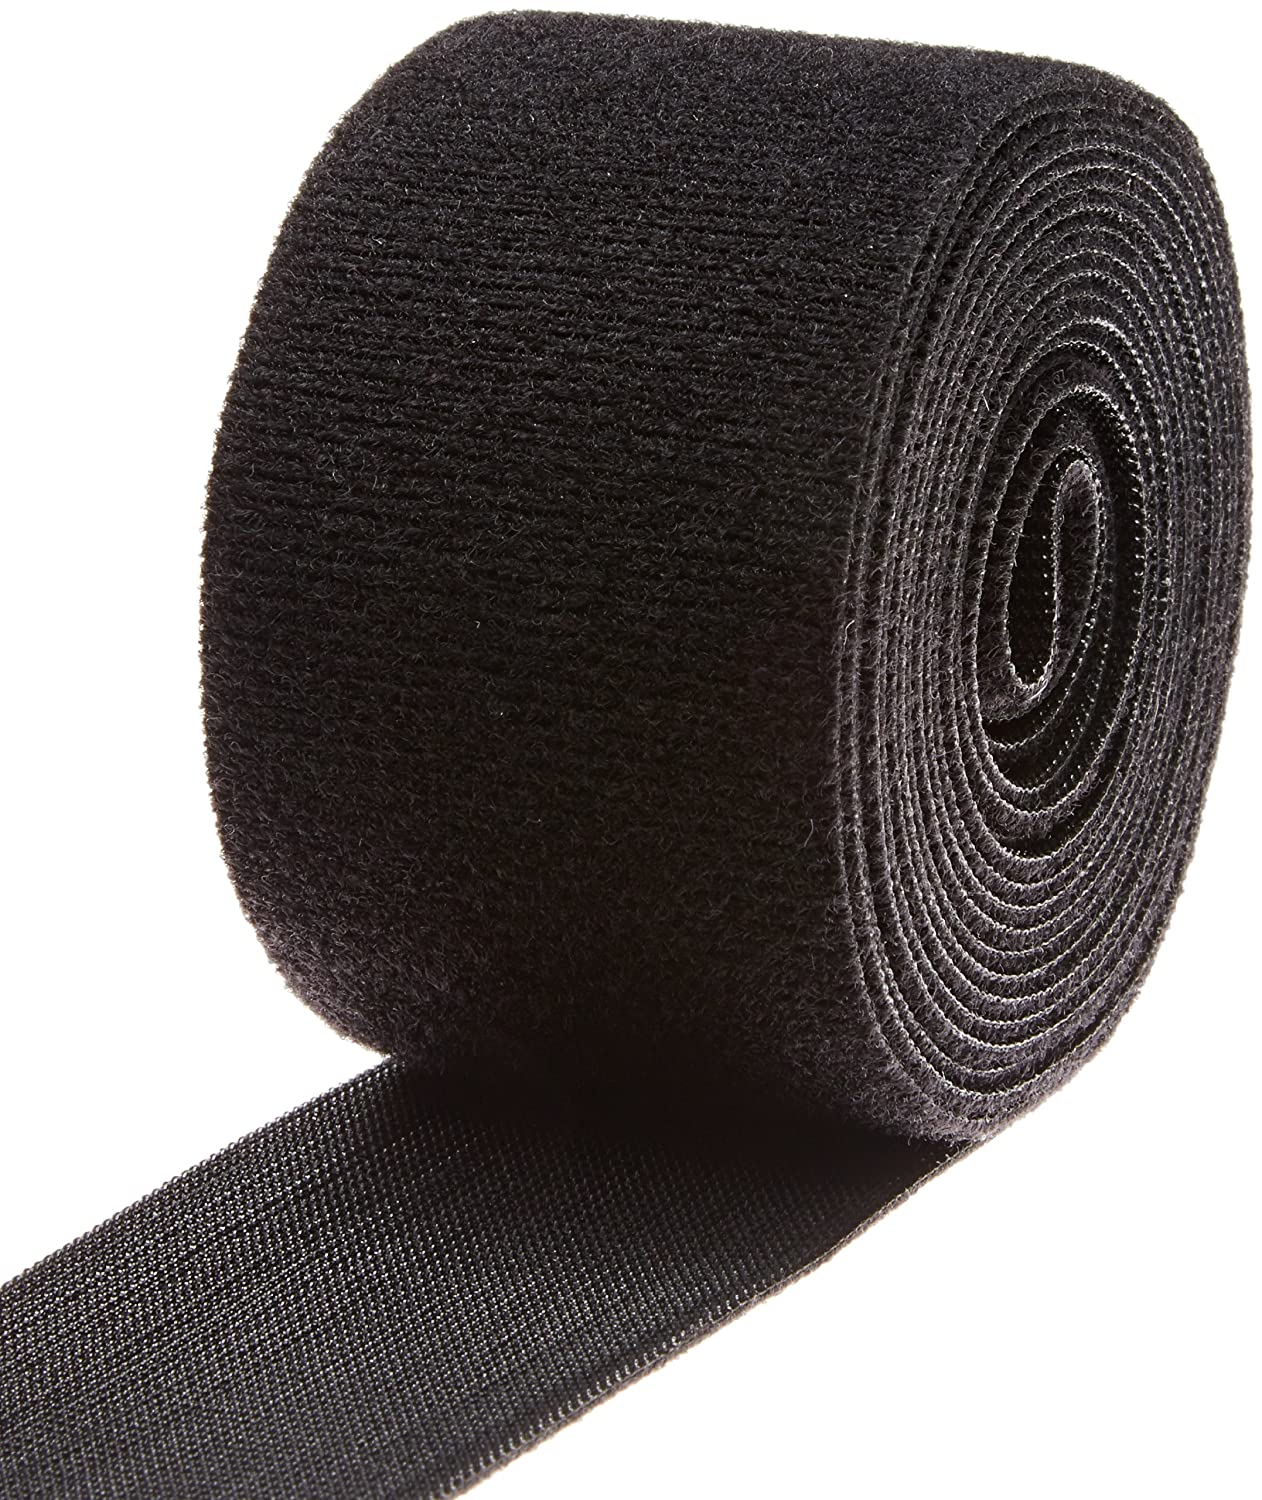 VELCRO 1806-OW-PB/B Black Nylon Onewrap Velcro Strap, Hook and Loop, 2' Wide, 10' Length 2 Wide 10' Length CS Hyde Company Inc 1806-OW-PB/B-10